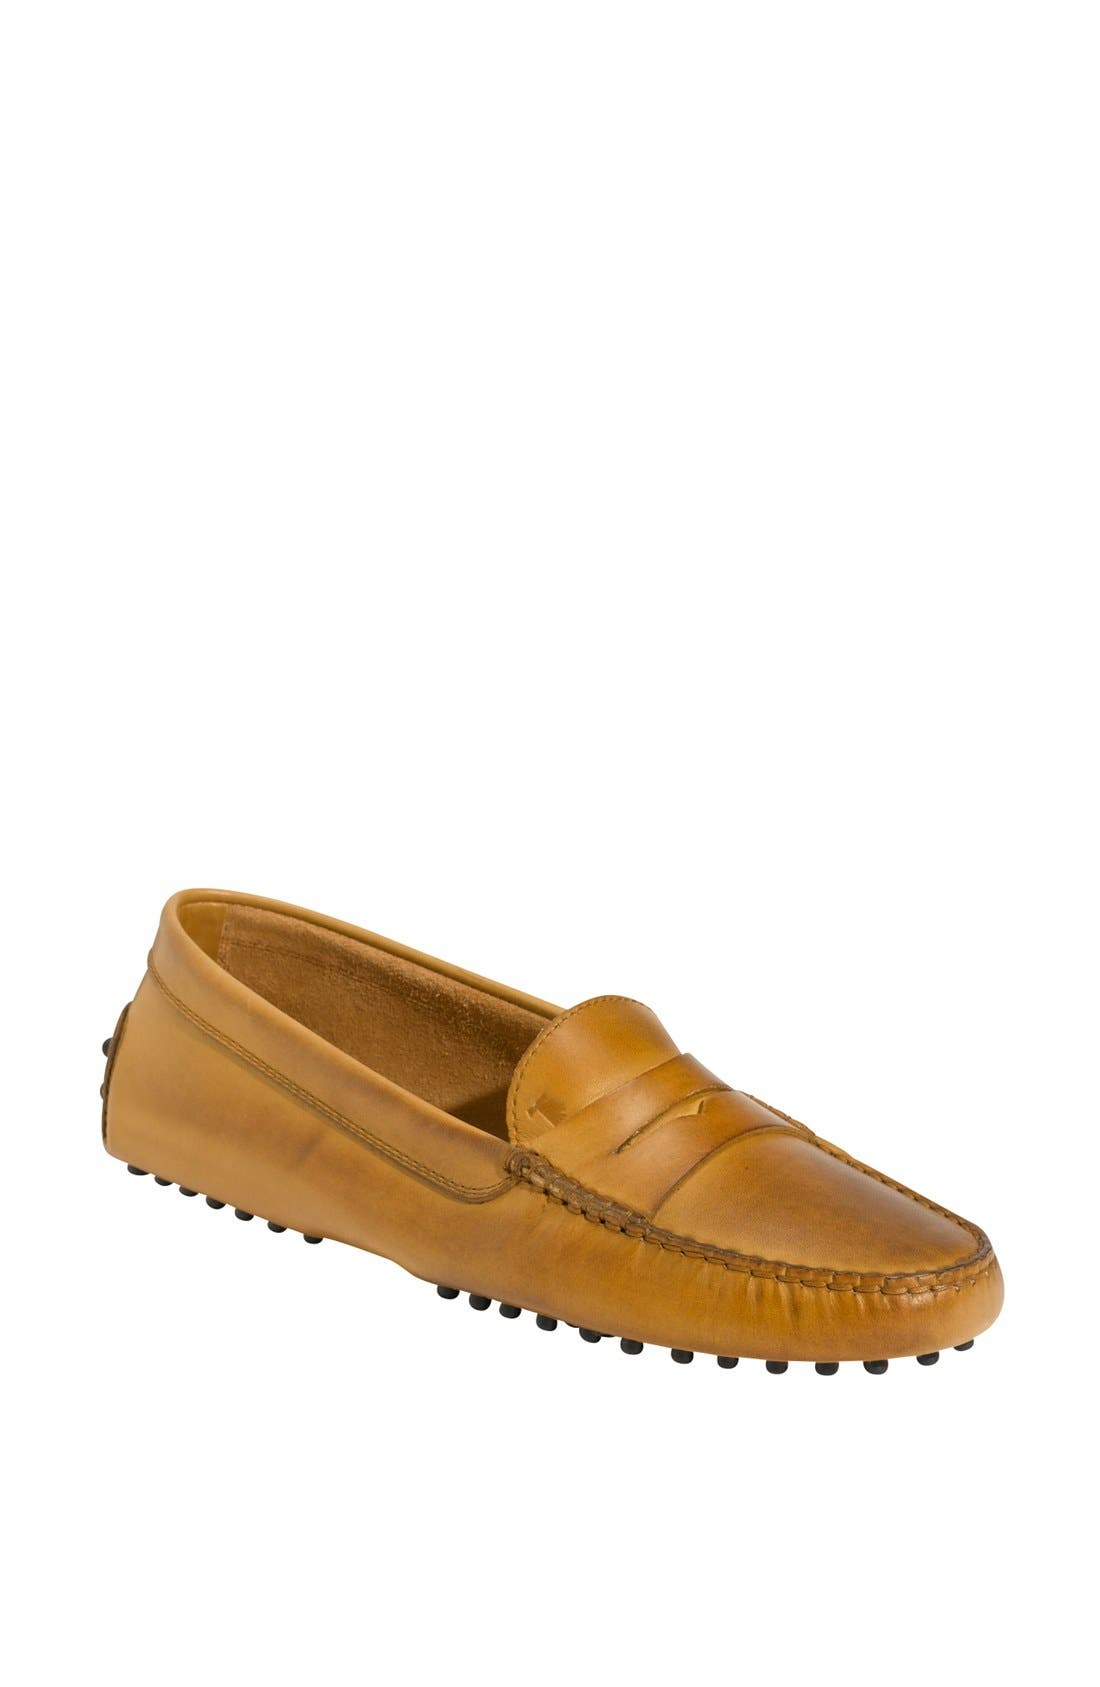 'Gommini' Driving Moccasin,                         Main,                         color, Brown